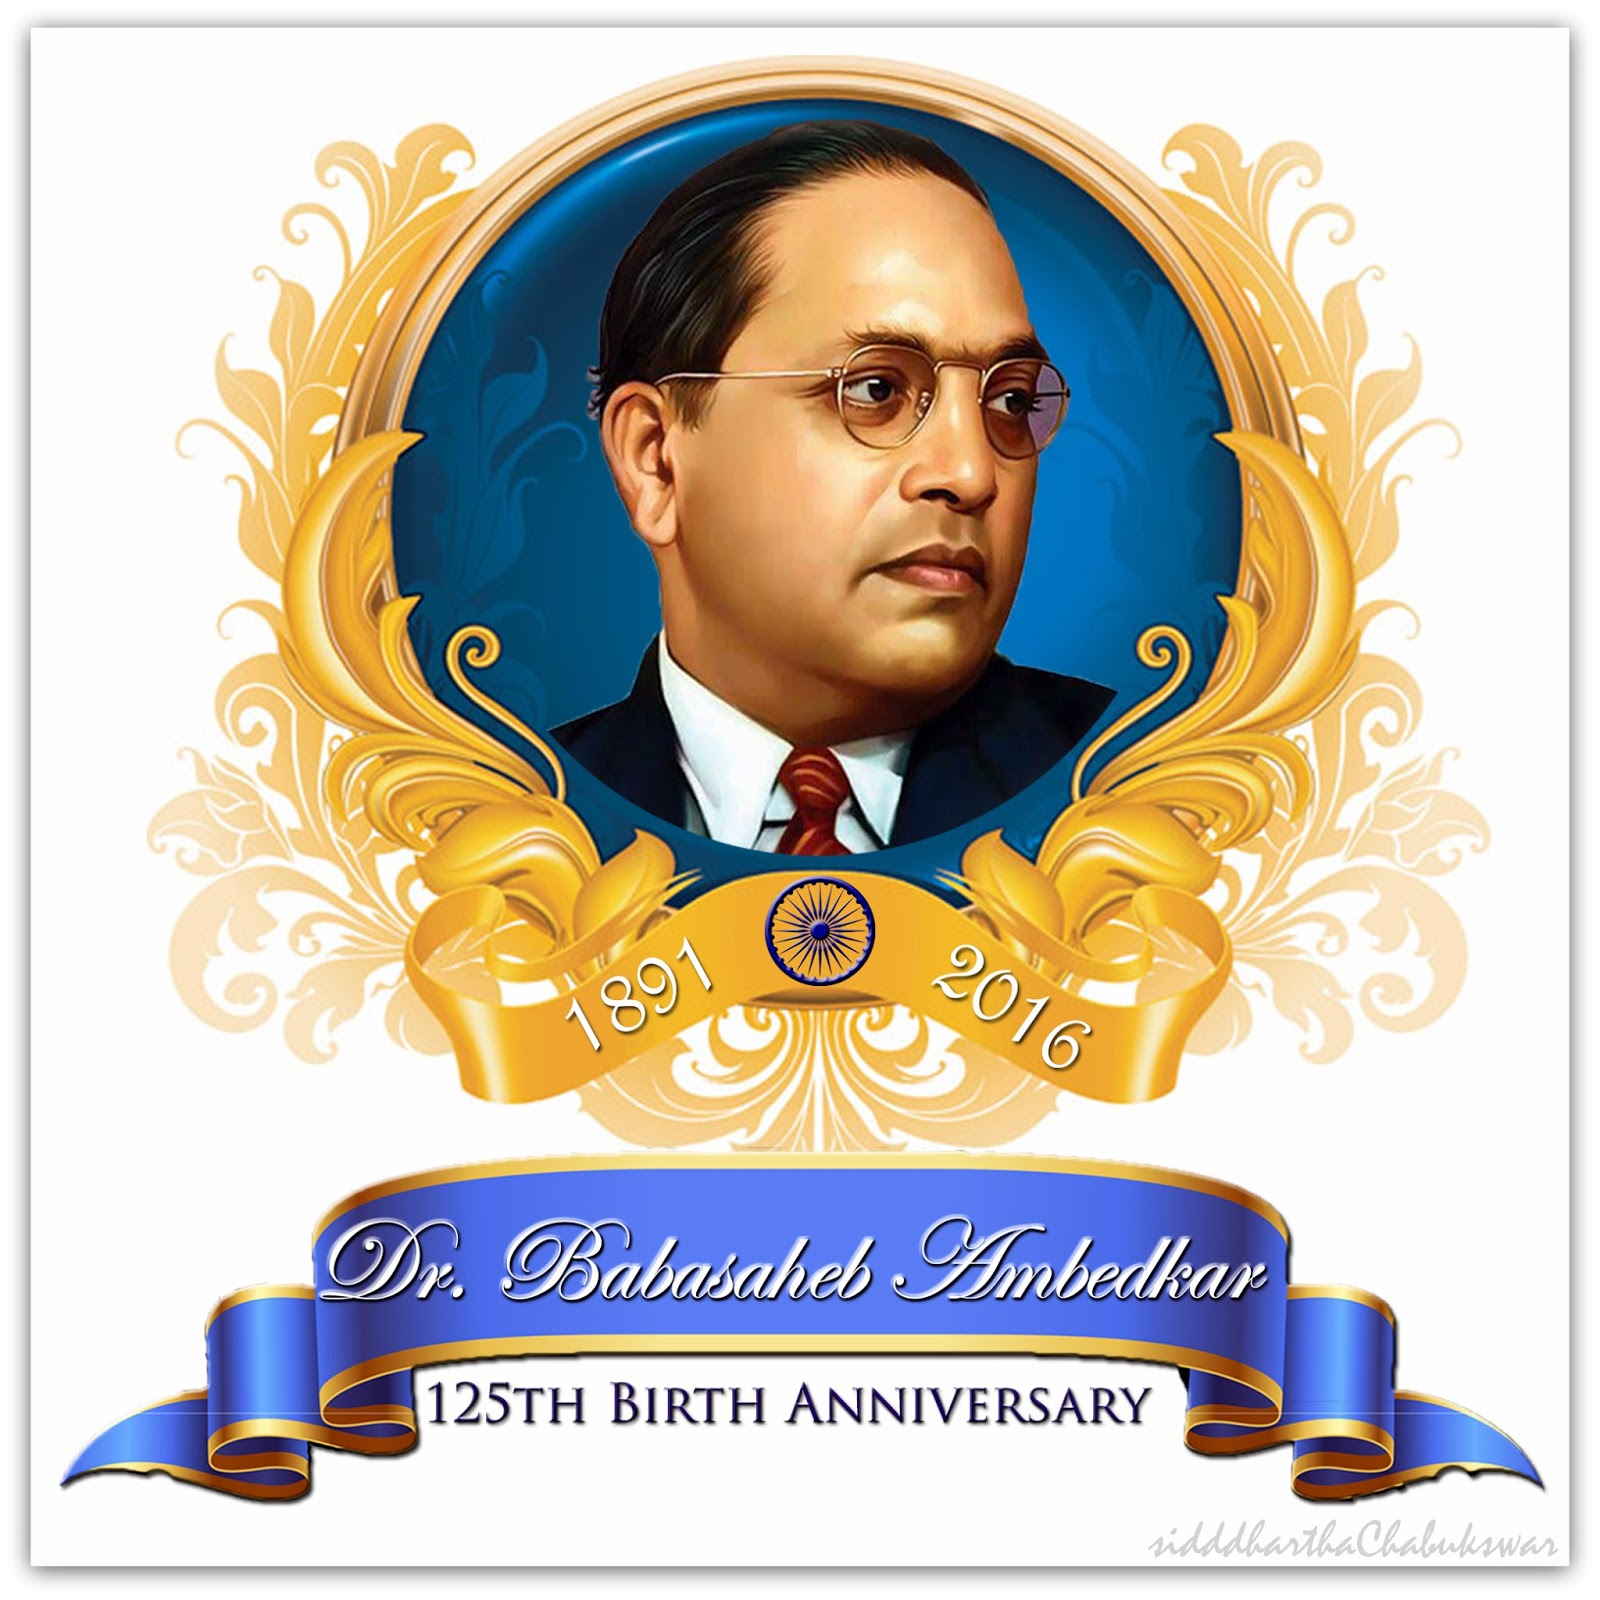 125th Dr Babasaheb Ambedkar Jayanti Photo Siddhartha Chabukswar Blog